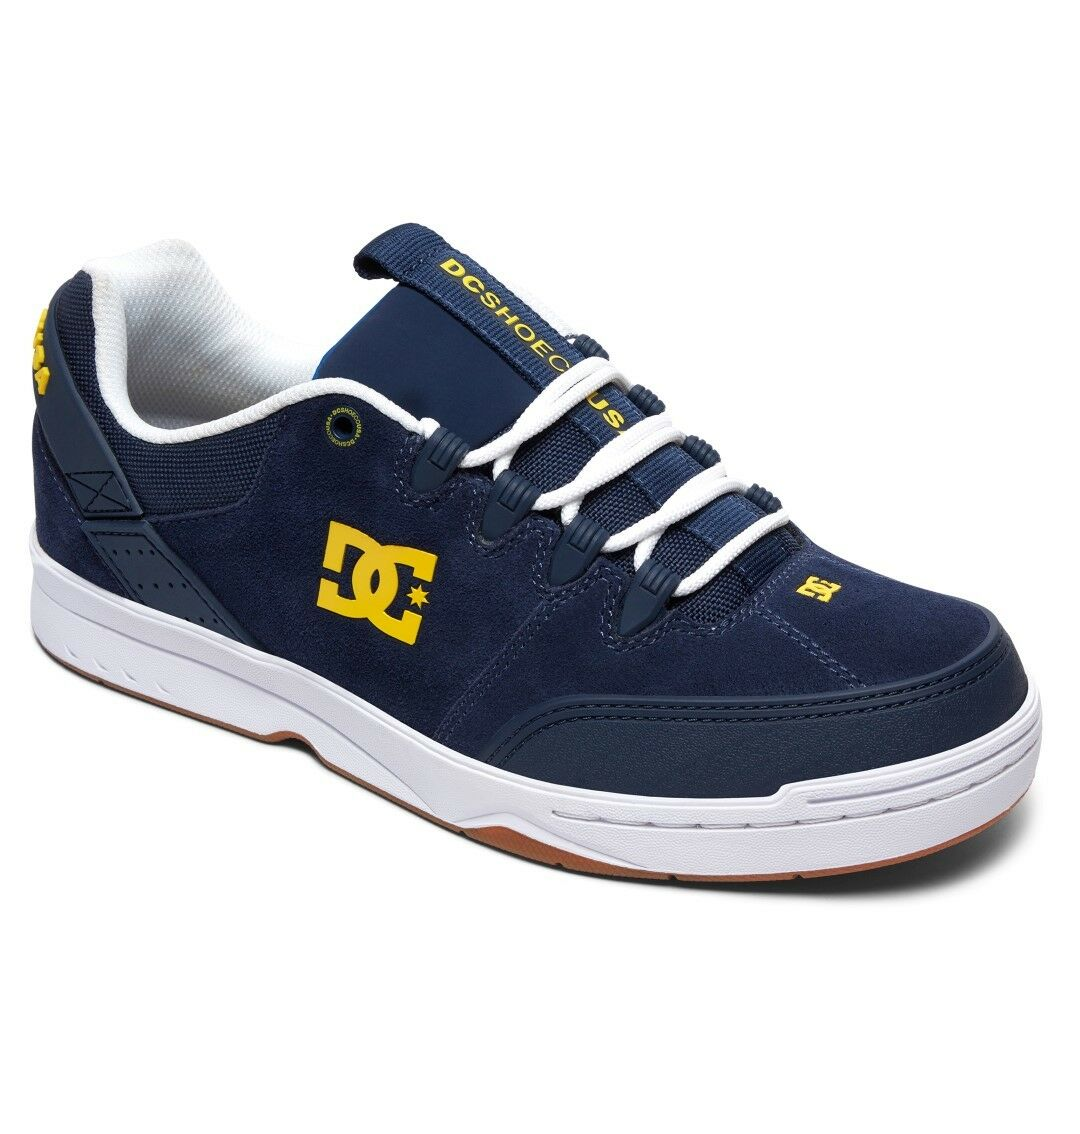 Dc Shoes Syntax M Shoe Nwh Navy/White 48.5 EU (14 US / 13 UK)